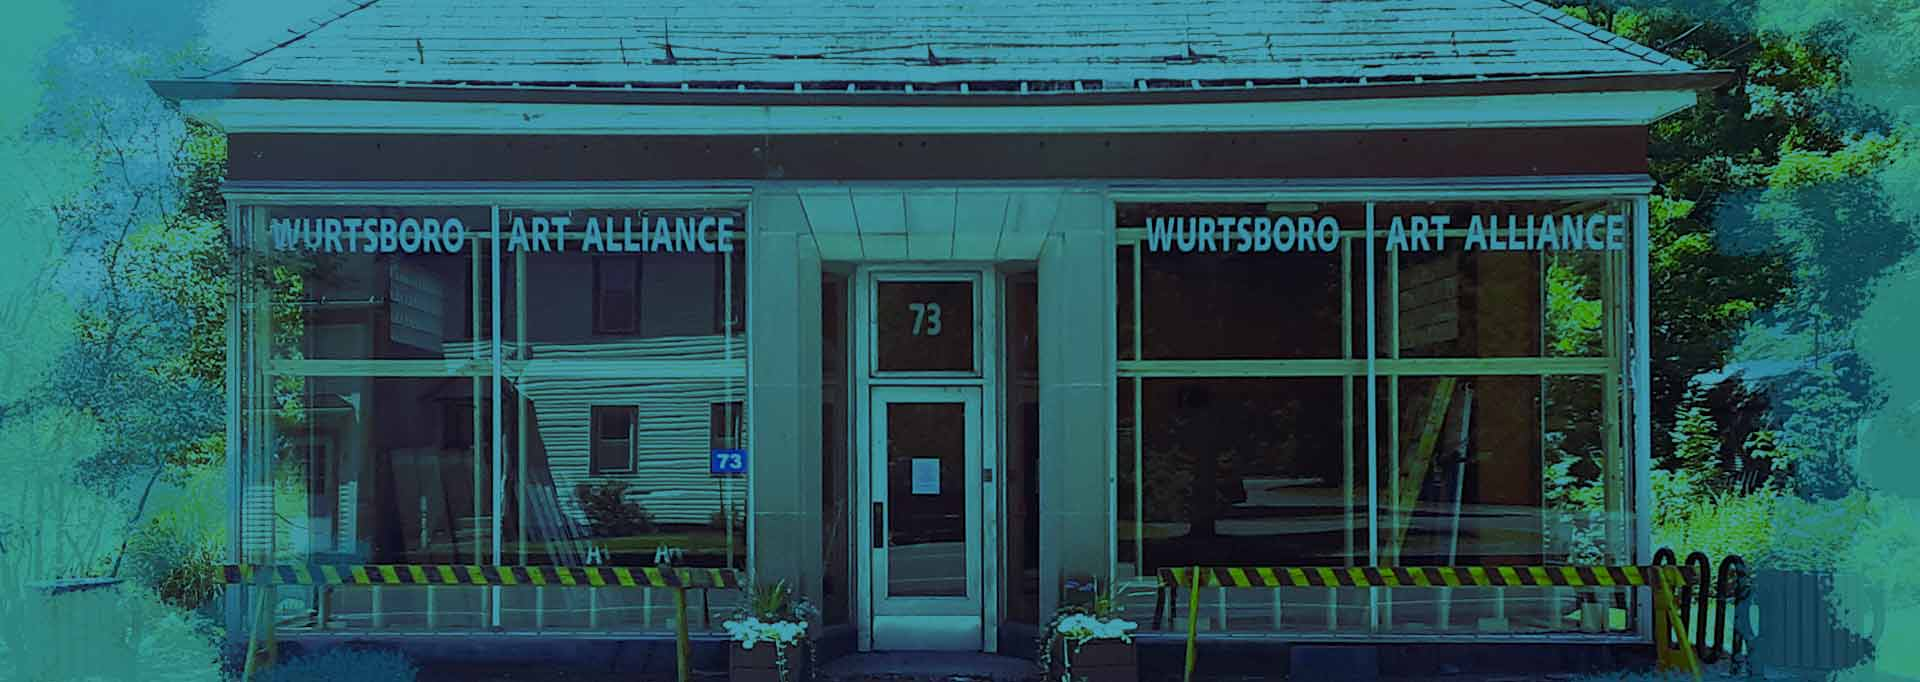 Wurtsboro Art Alliance 1